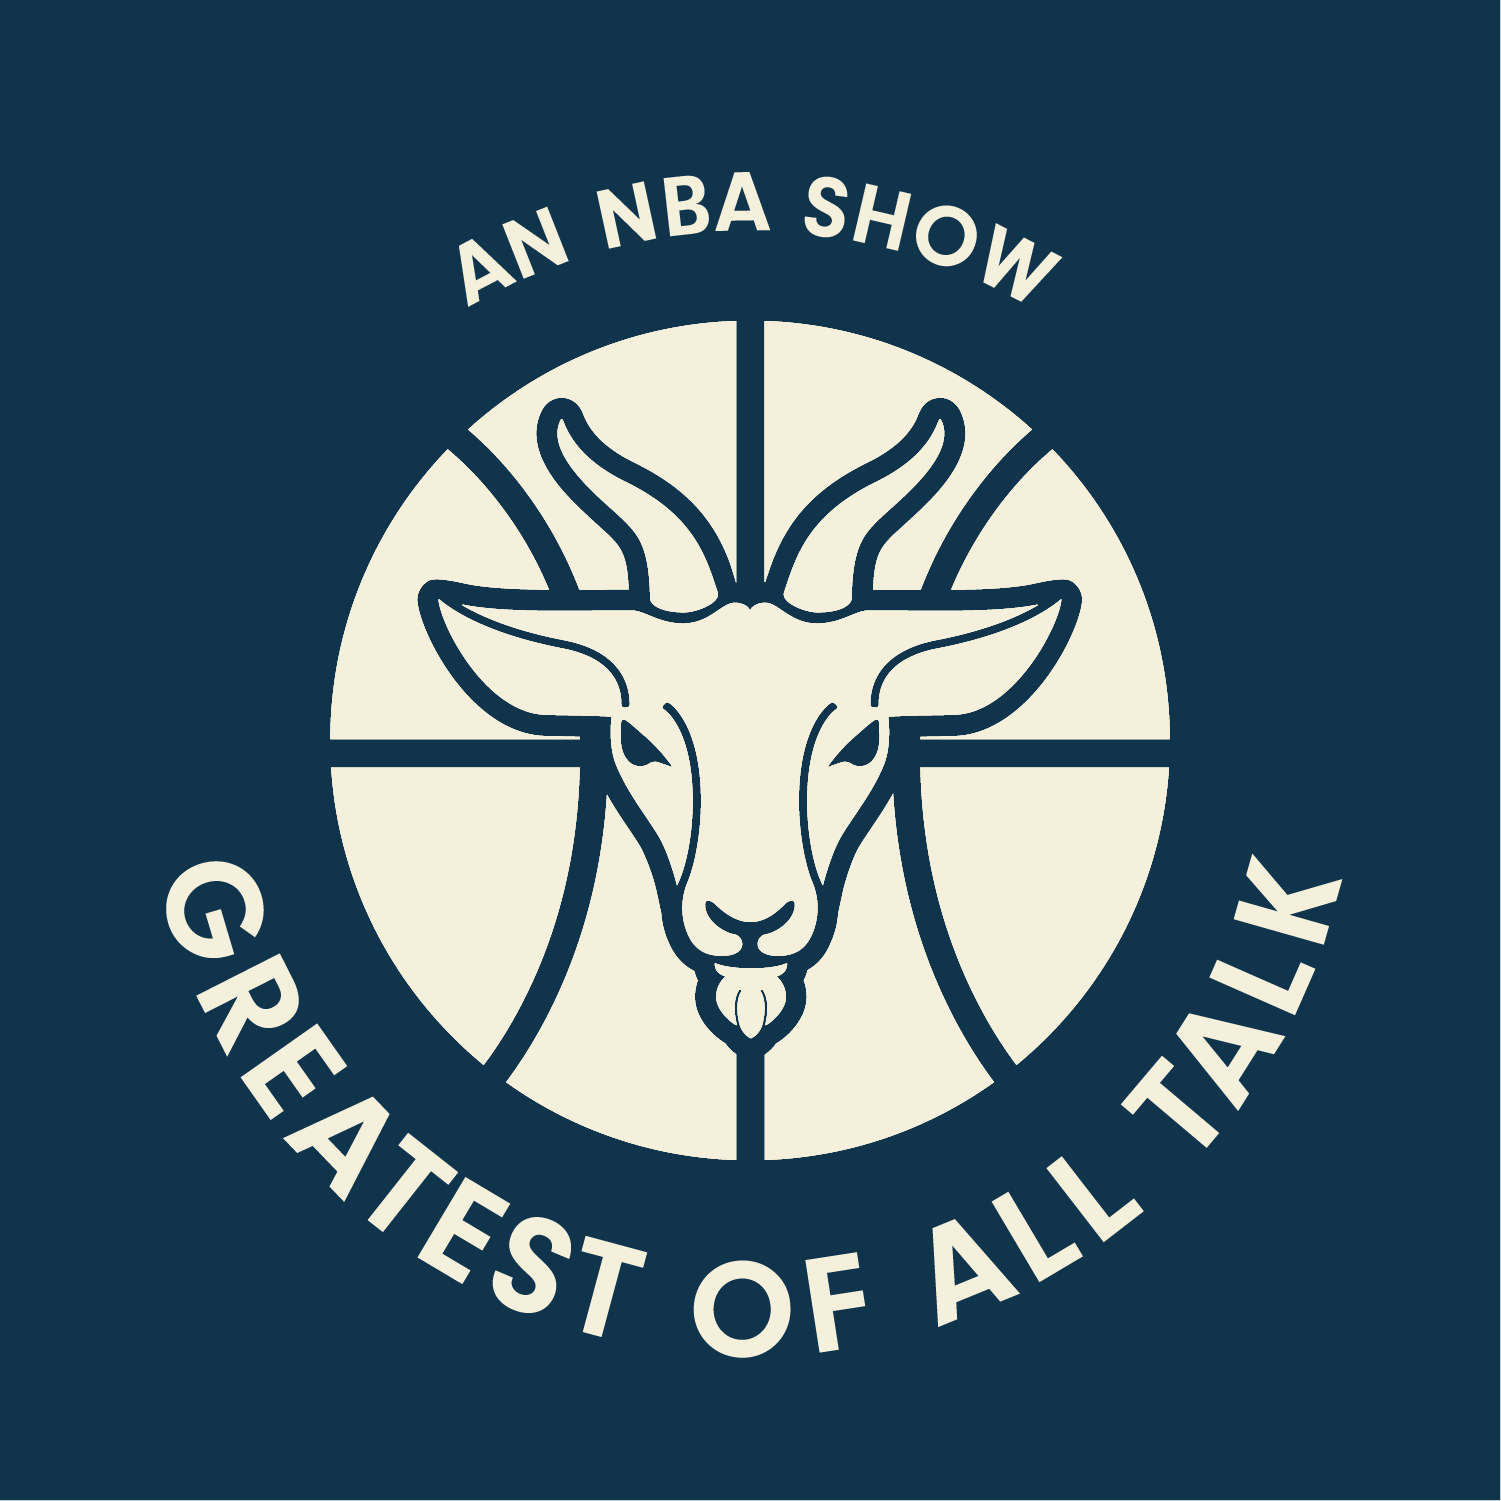 Greatest of All Talk logo